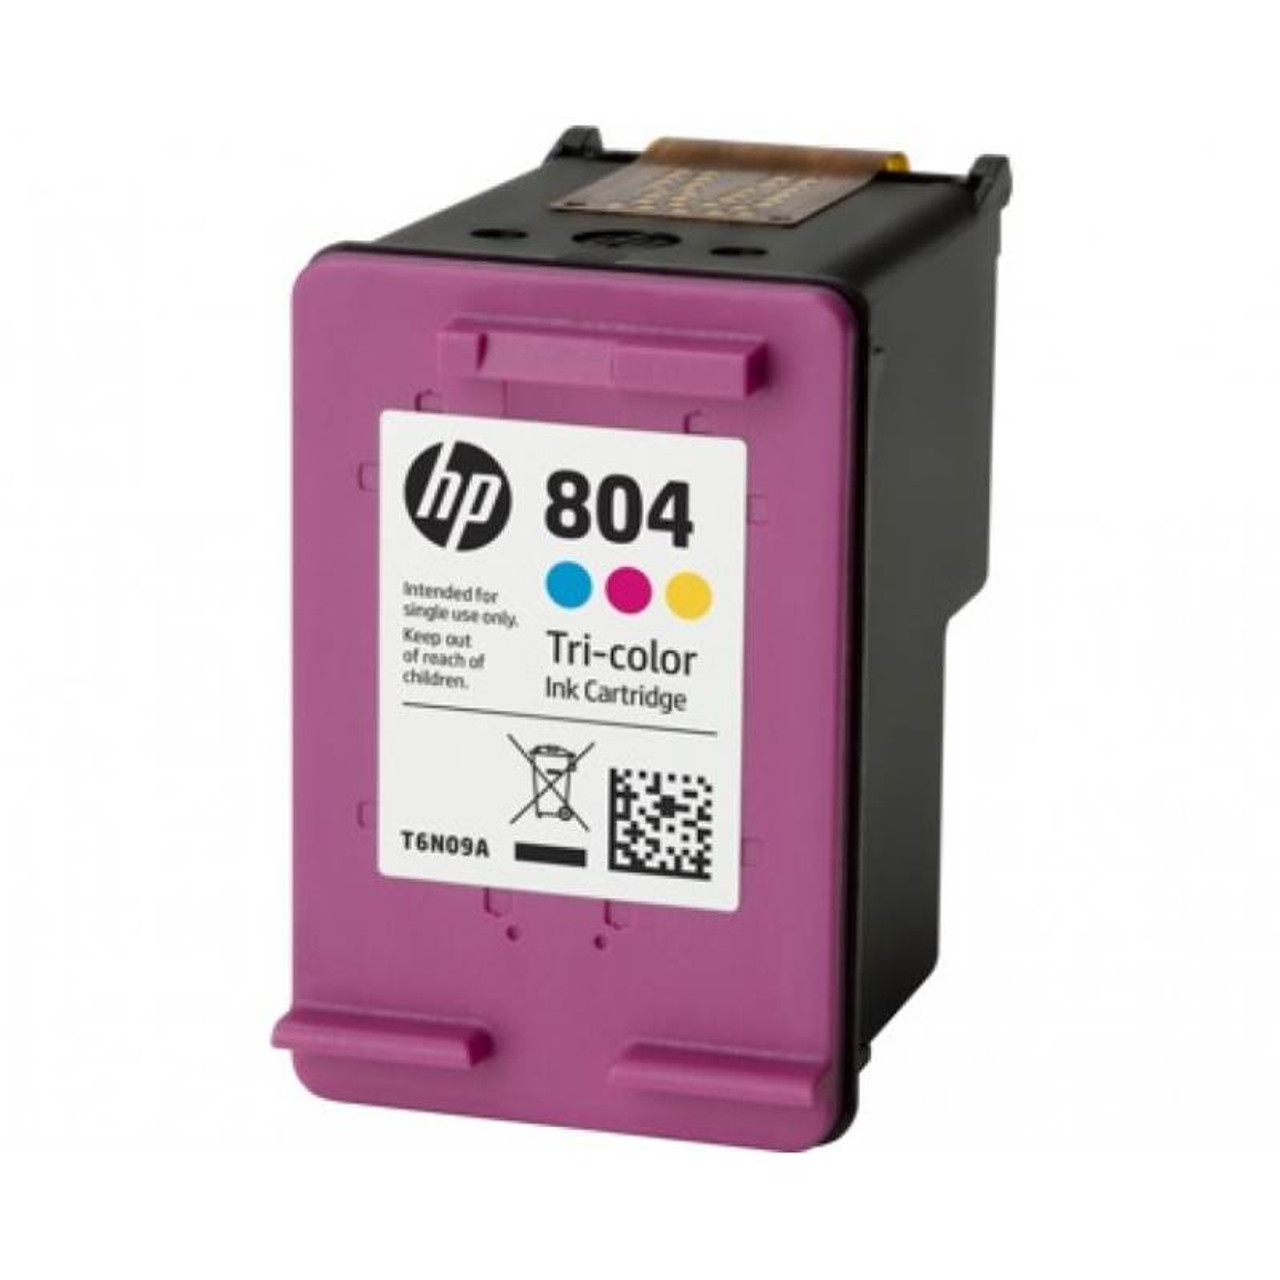 Image for HP804 Original Ink Cartridge - Tri-Colour (T6N09AA) CX Computer Superstore